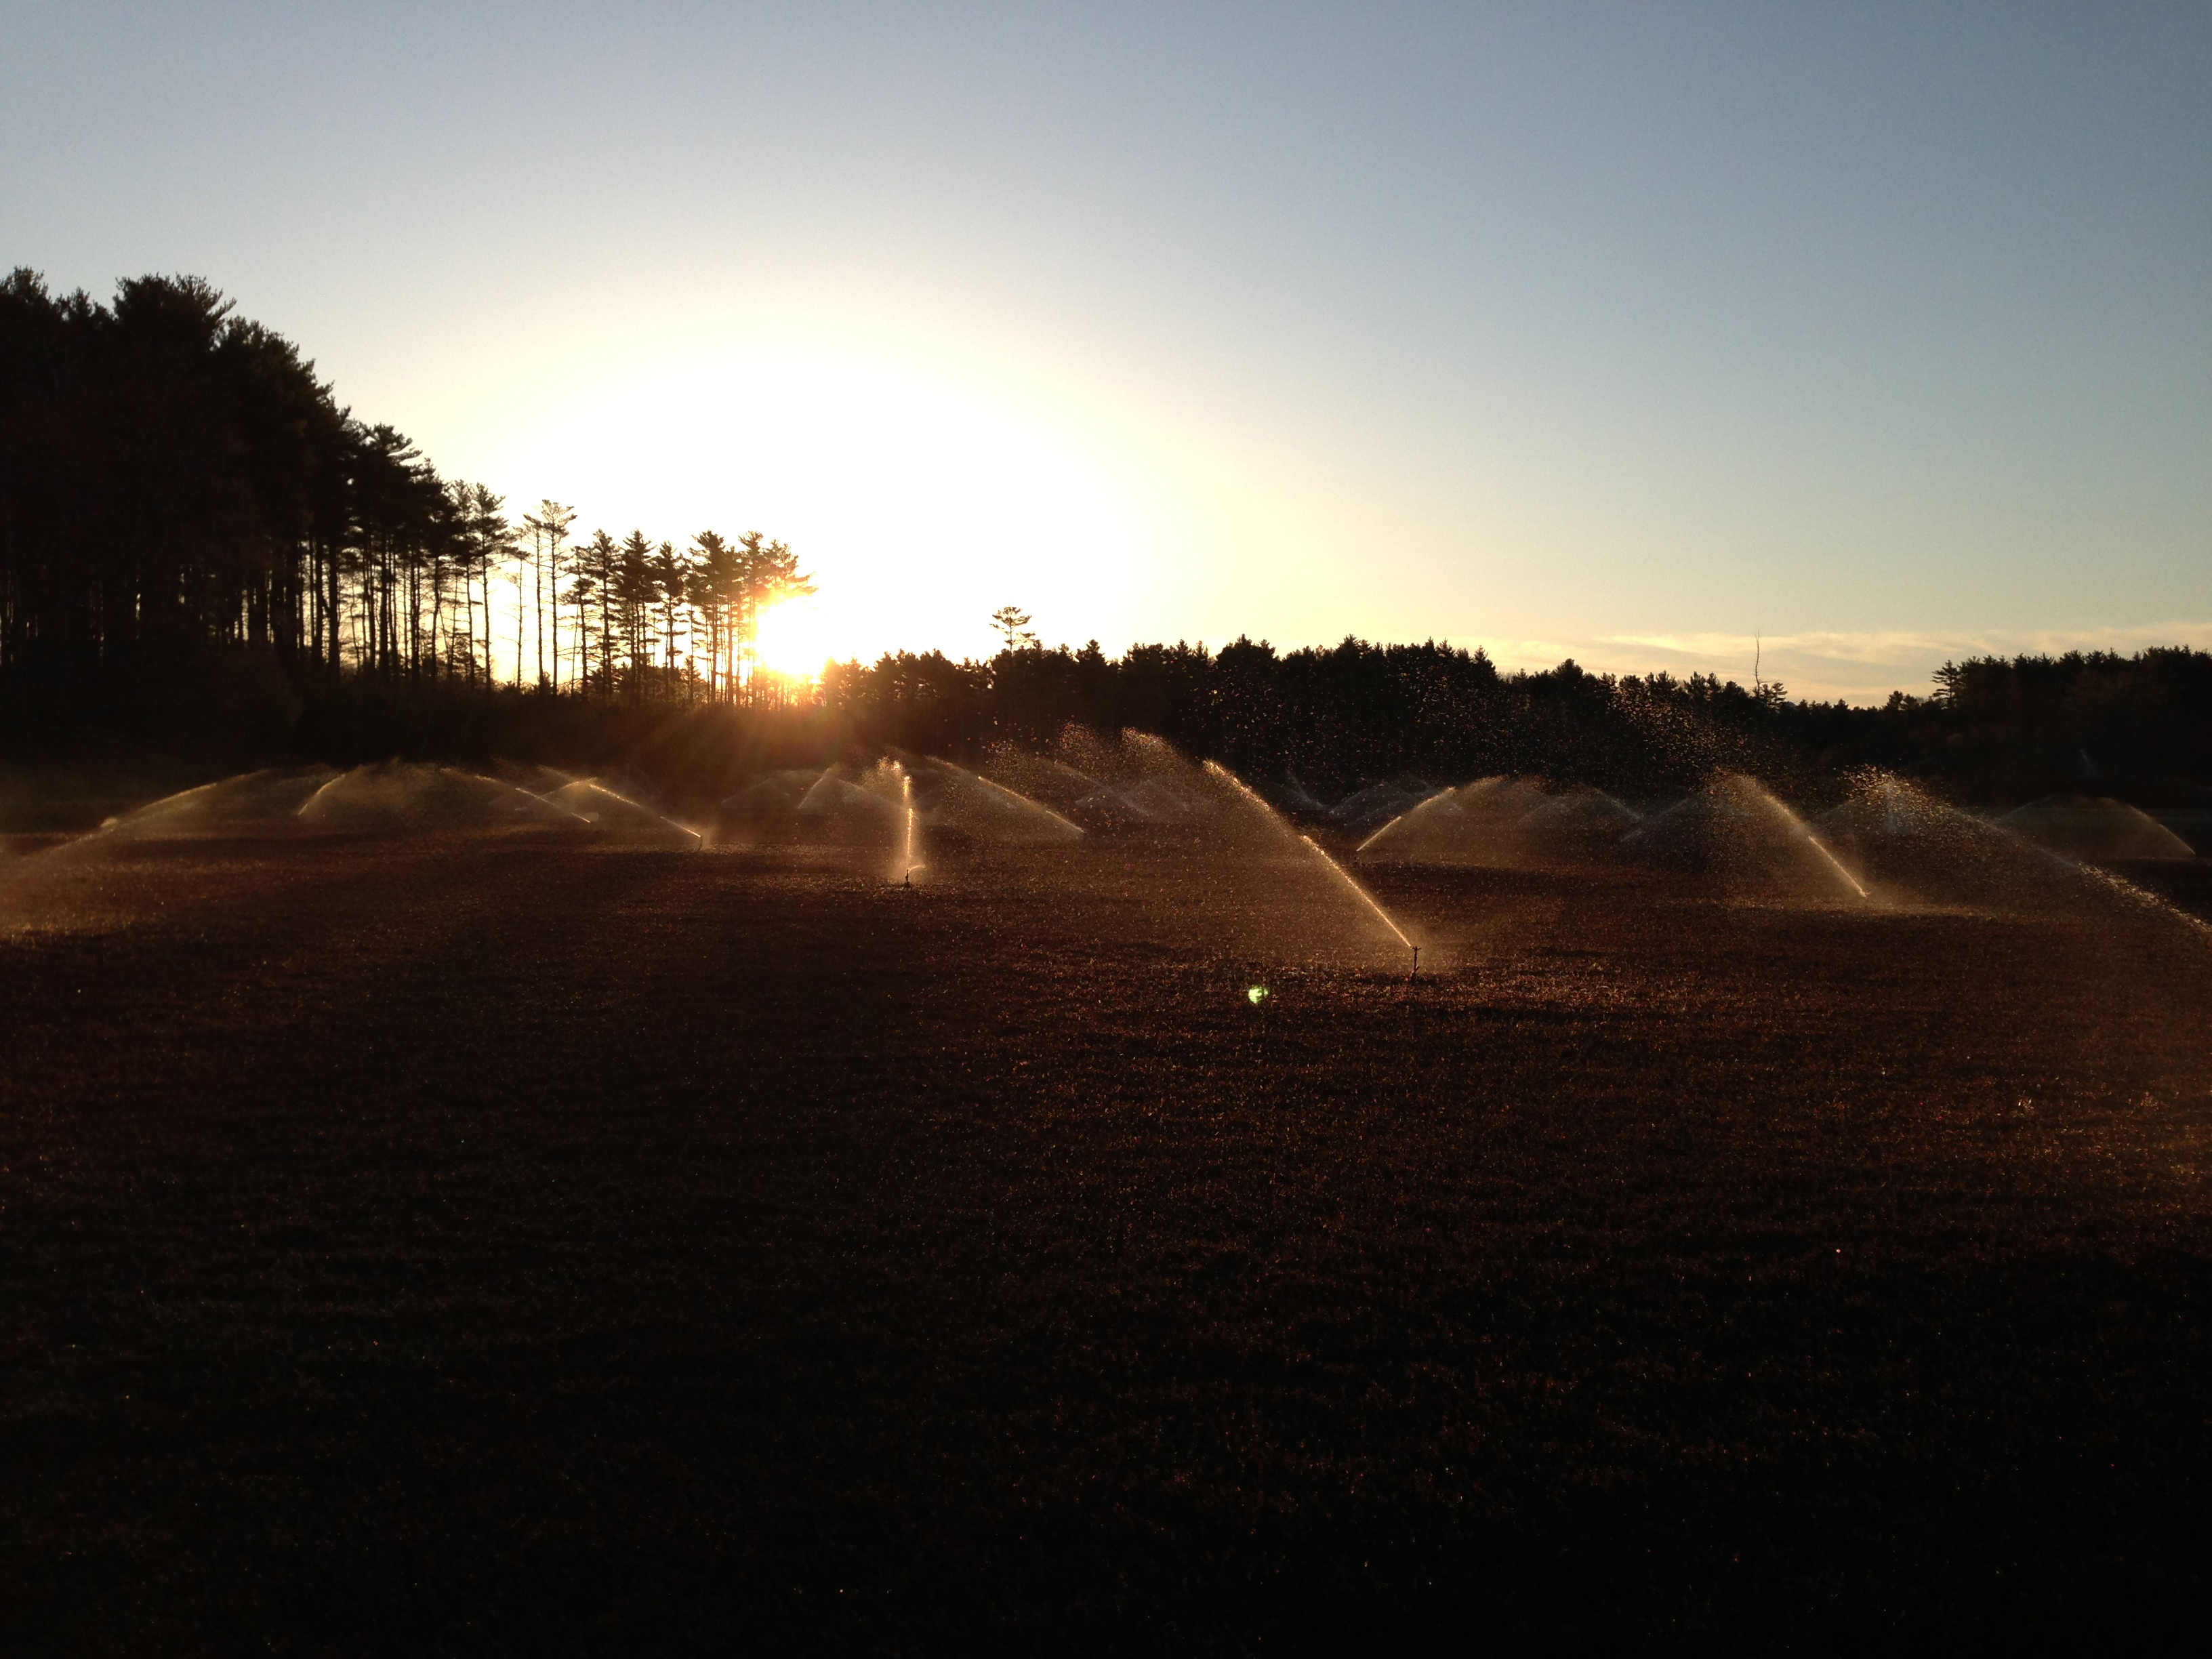 Sprinklers spray water on cranberries during a frosty morning